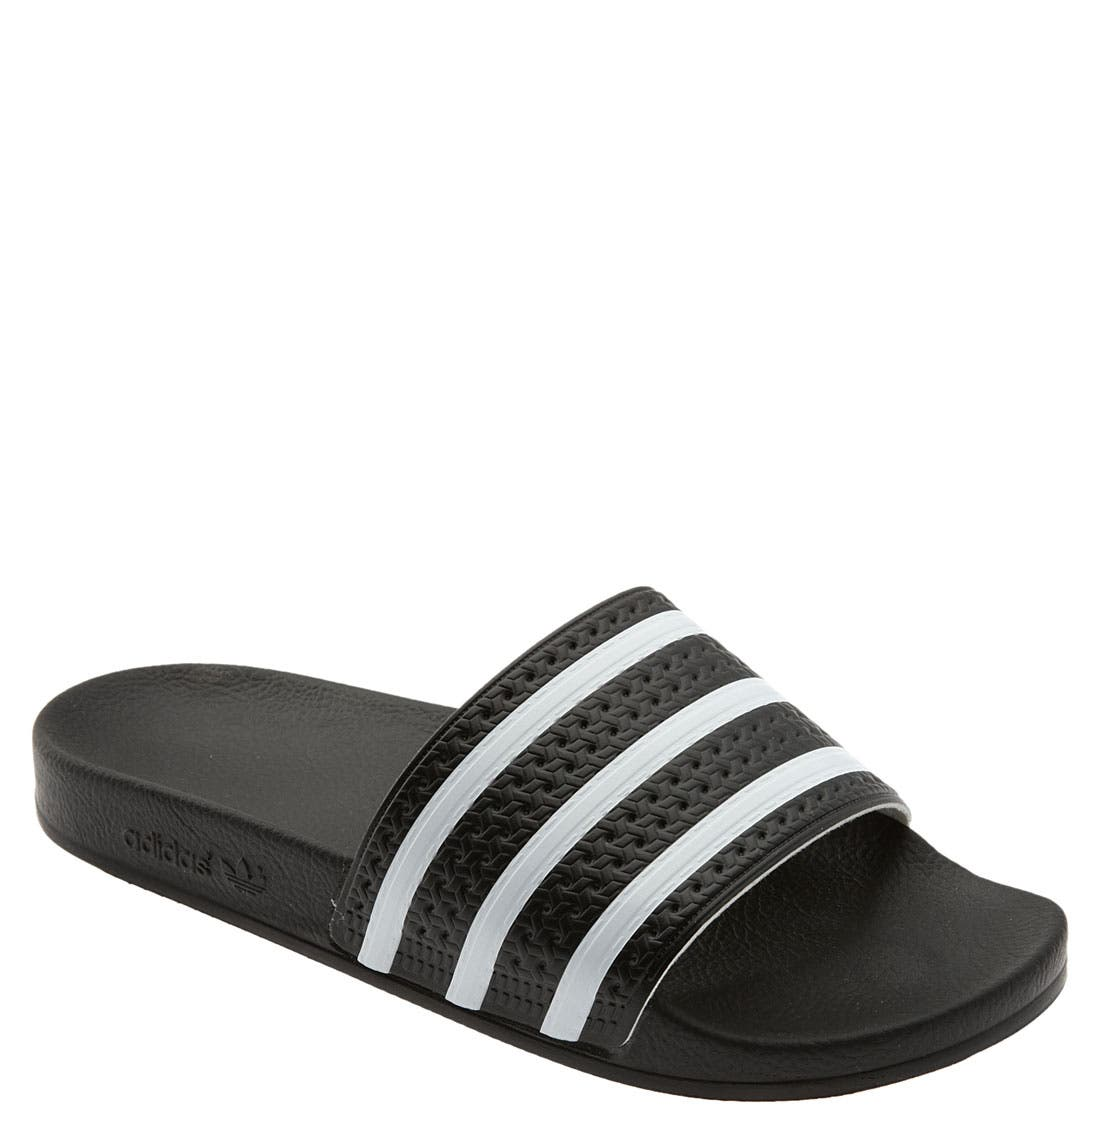 'Adilette' Slide Sandal,                             Main thumbnail 1, color,                             BLACK/ WHITE/ BLACK